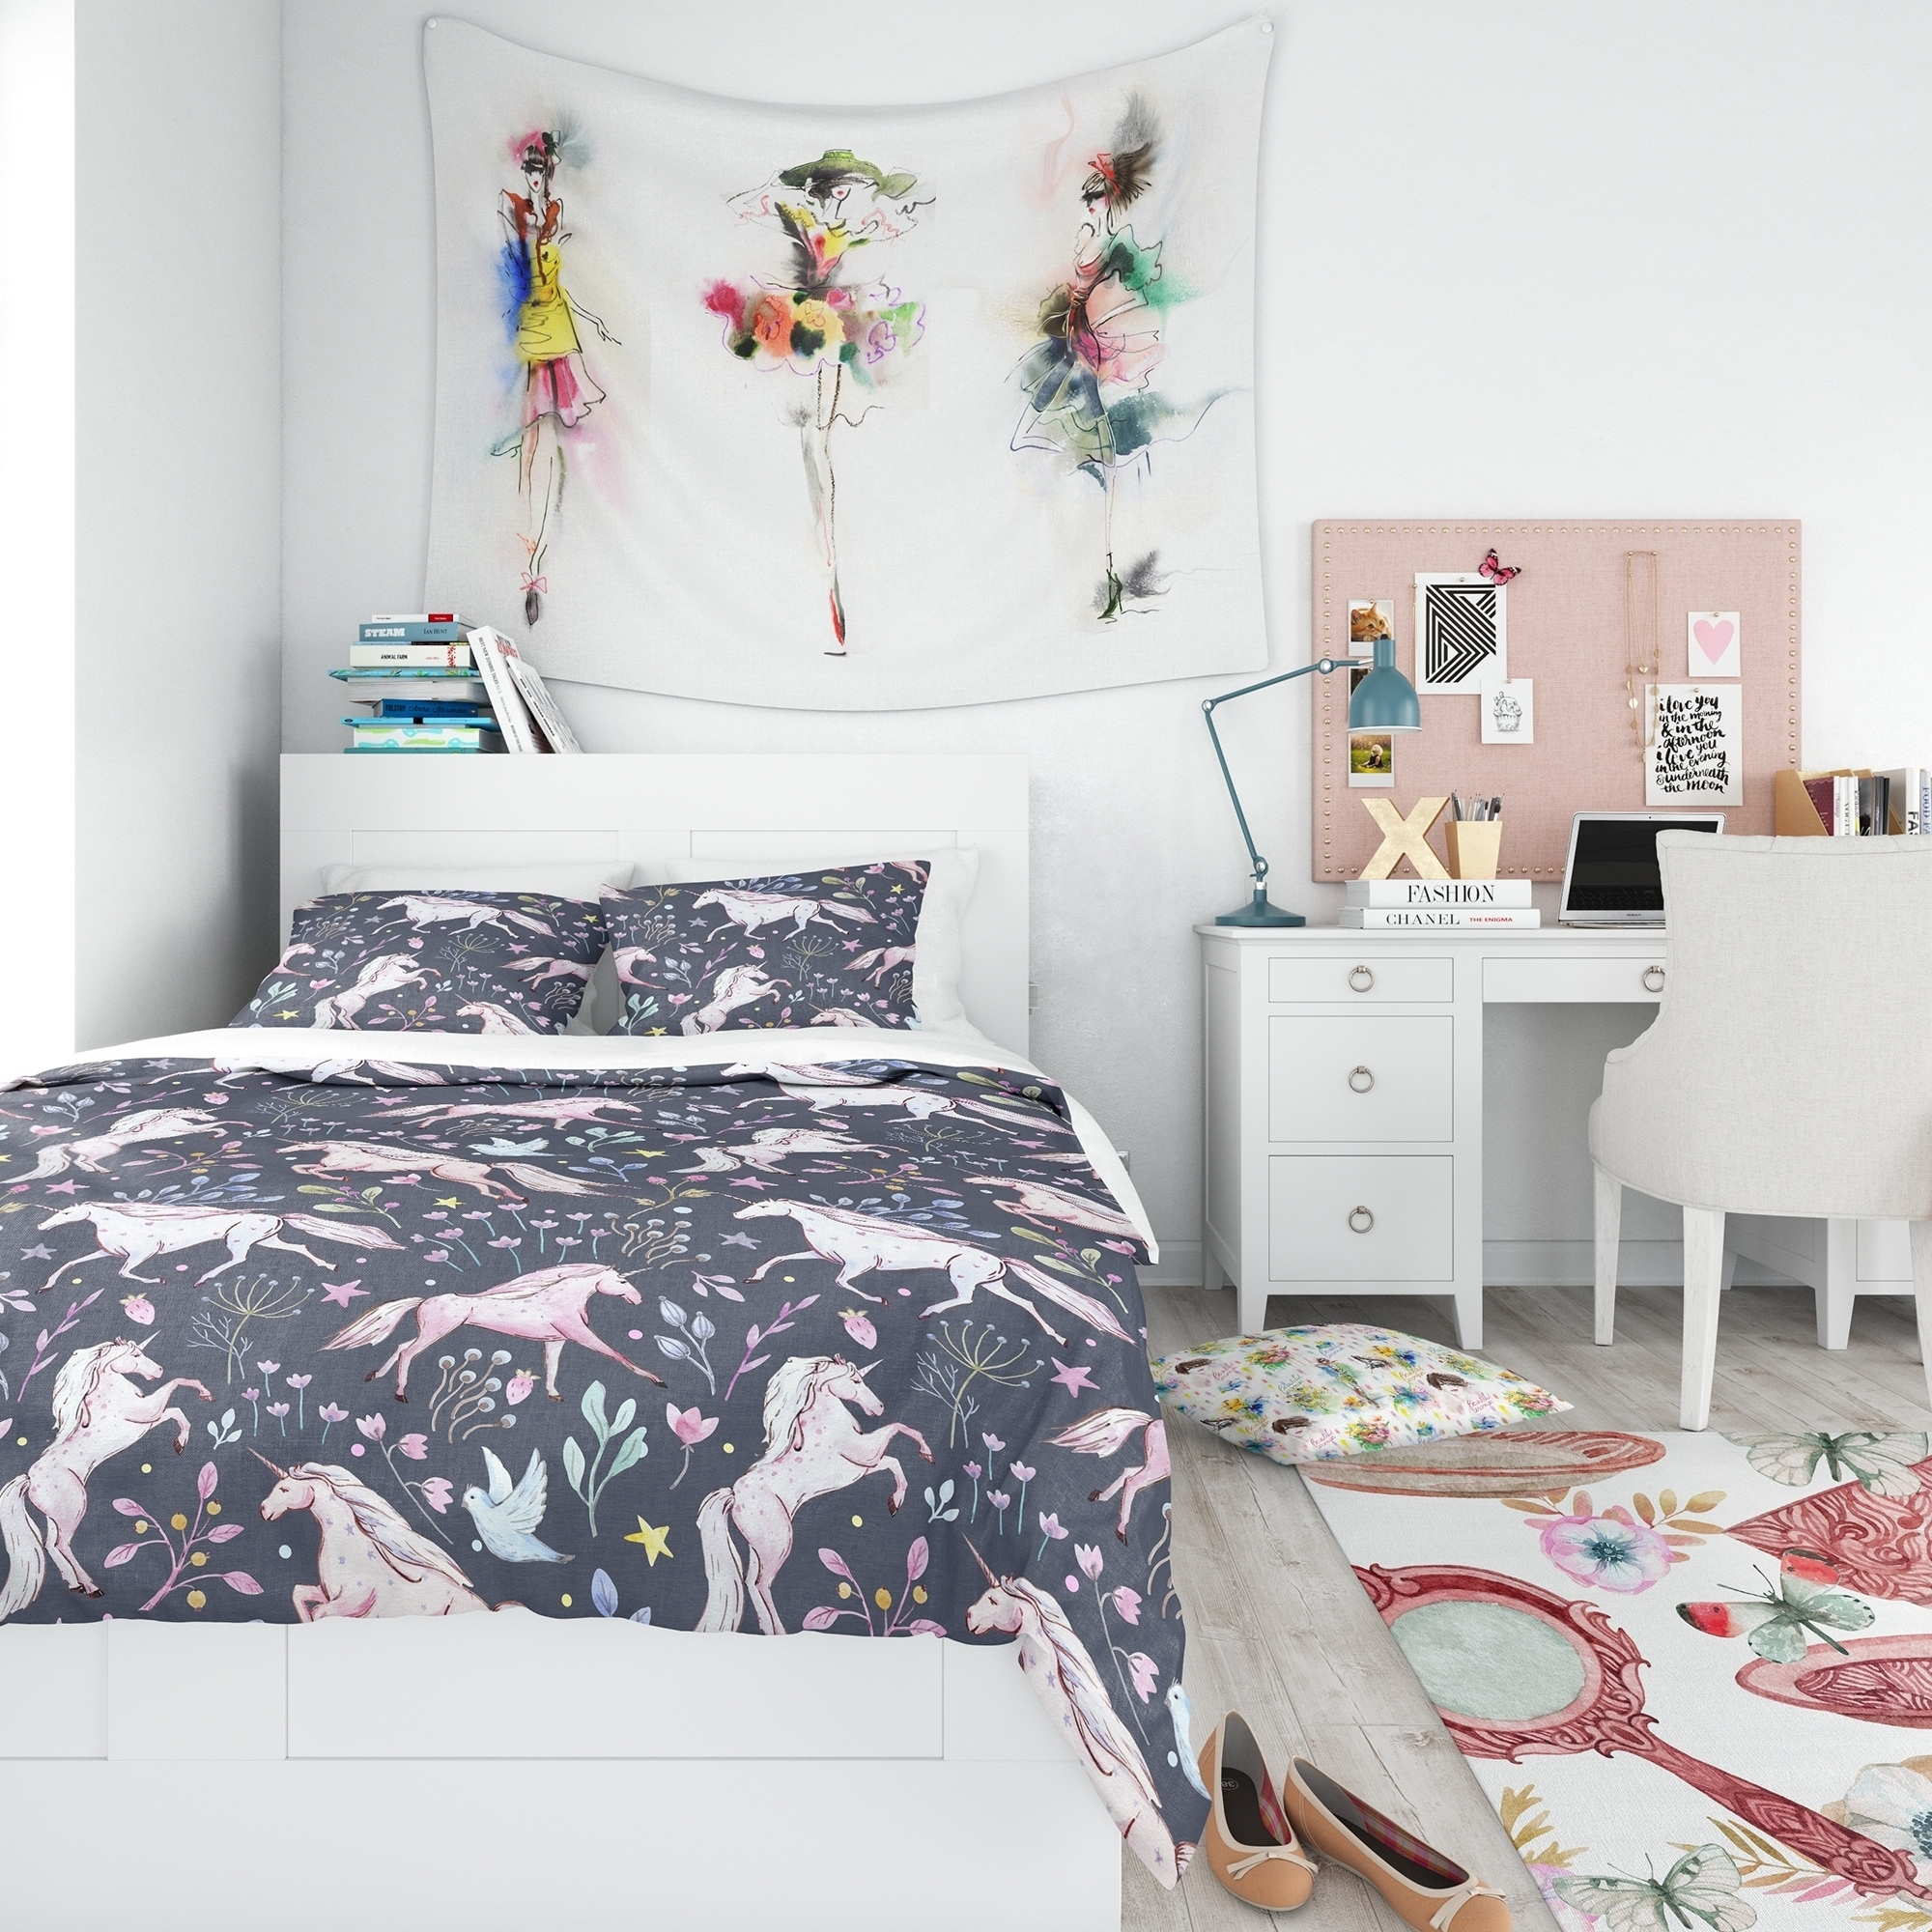 DESIGN ART Designart U0027Watercolor Unicorn Patternu0027 Modern Teen Bedding Set    Duvet Cover U0026 Shams   Walmart.com